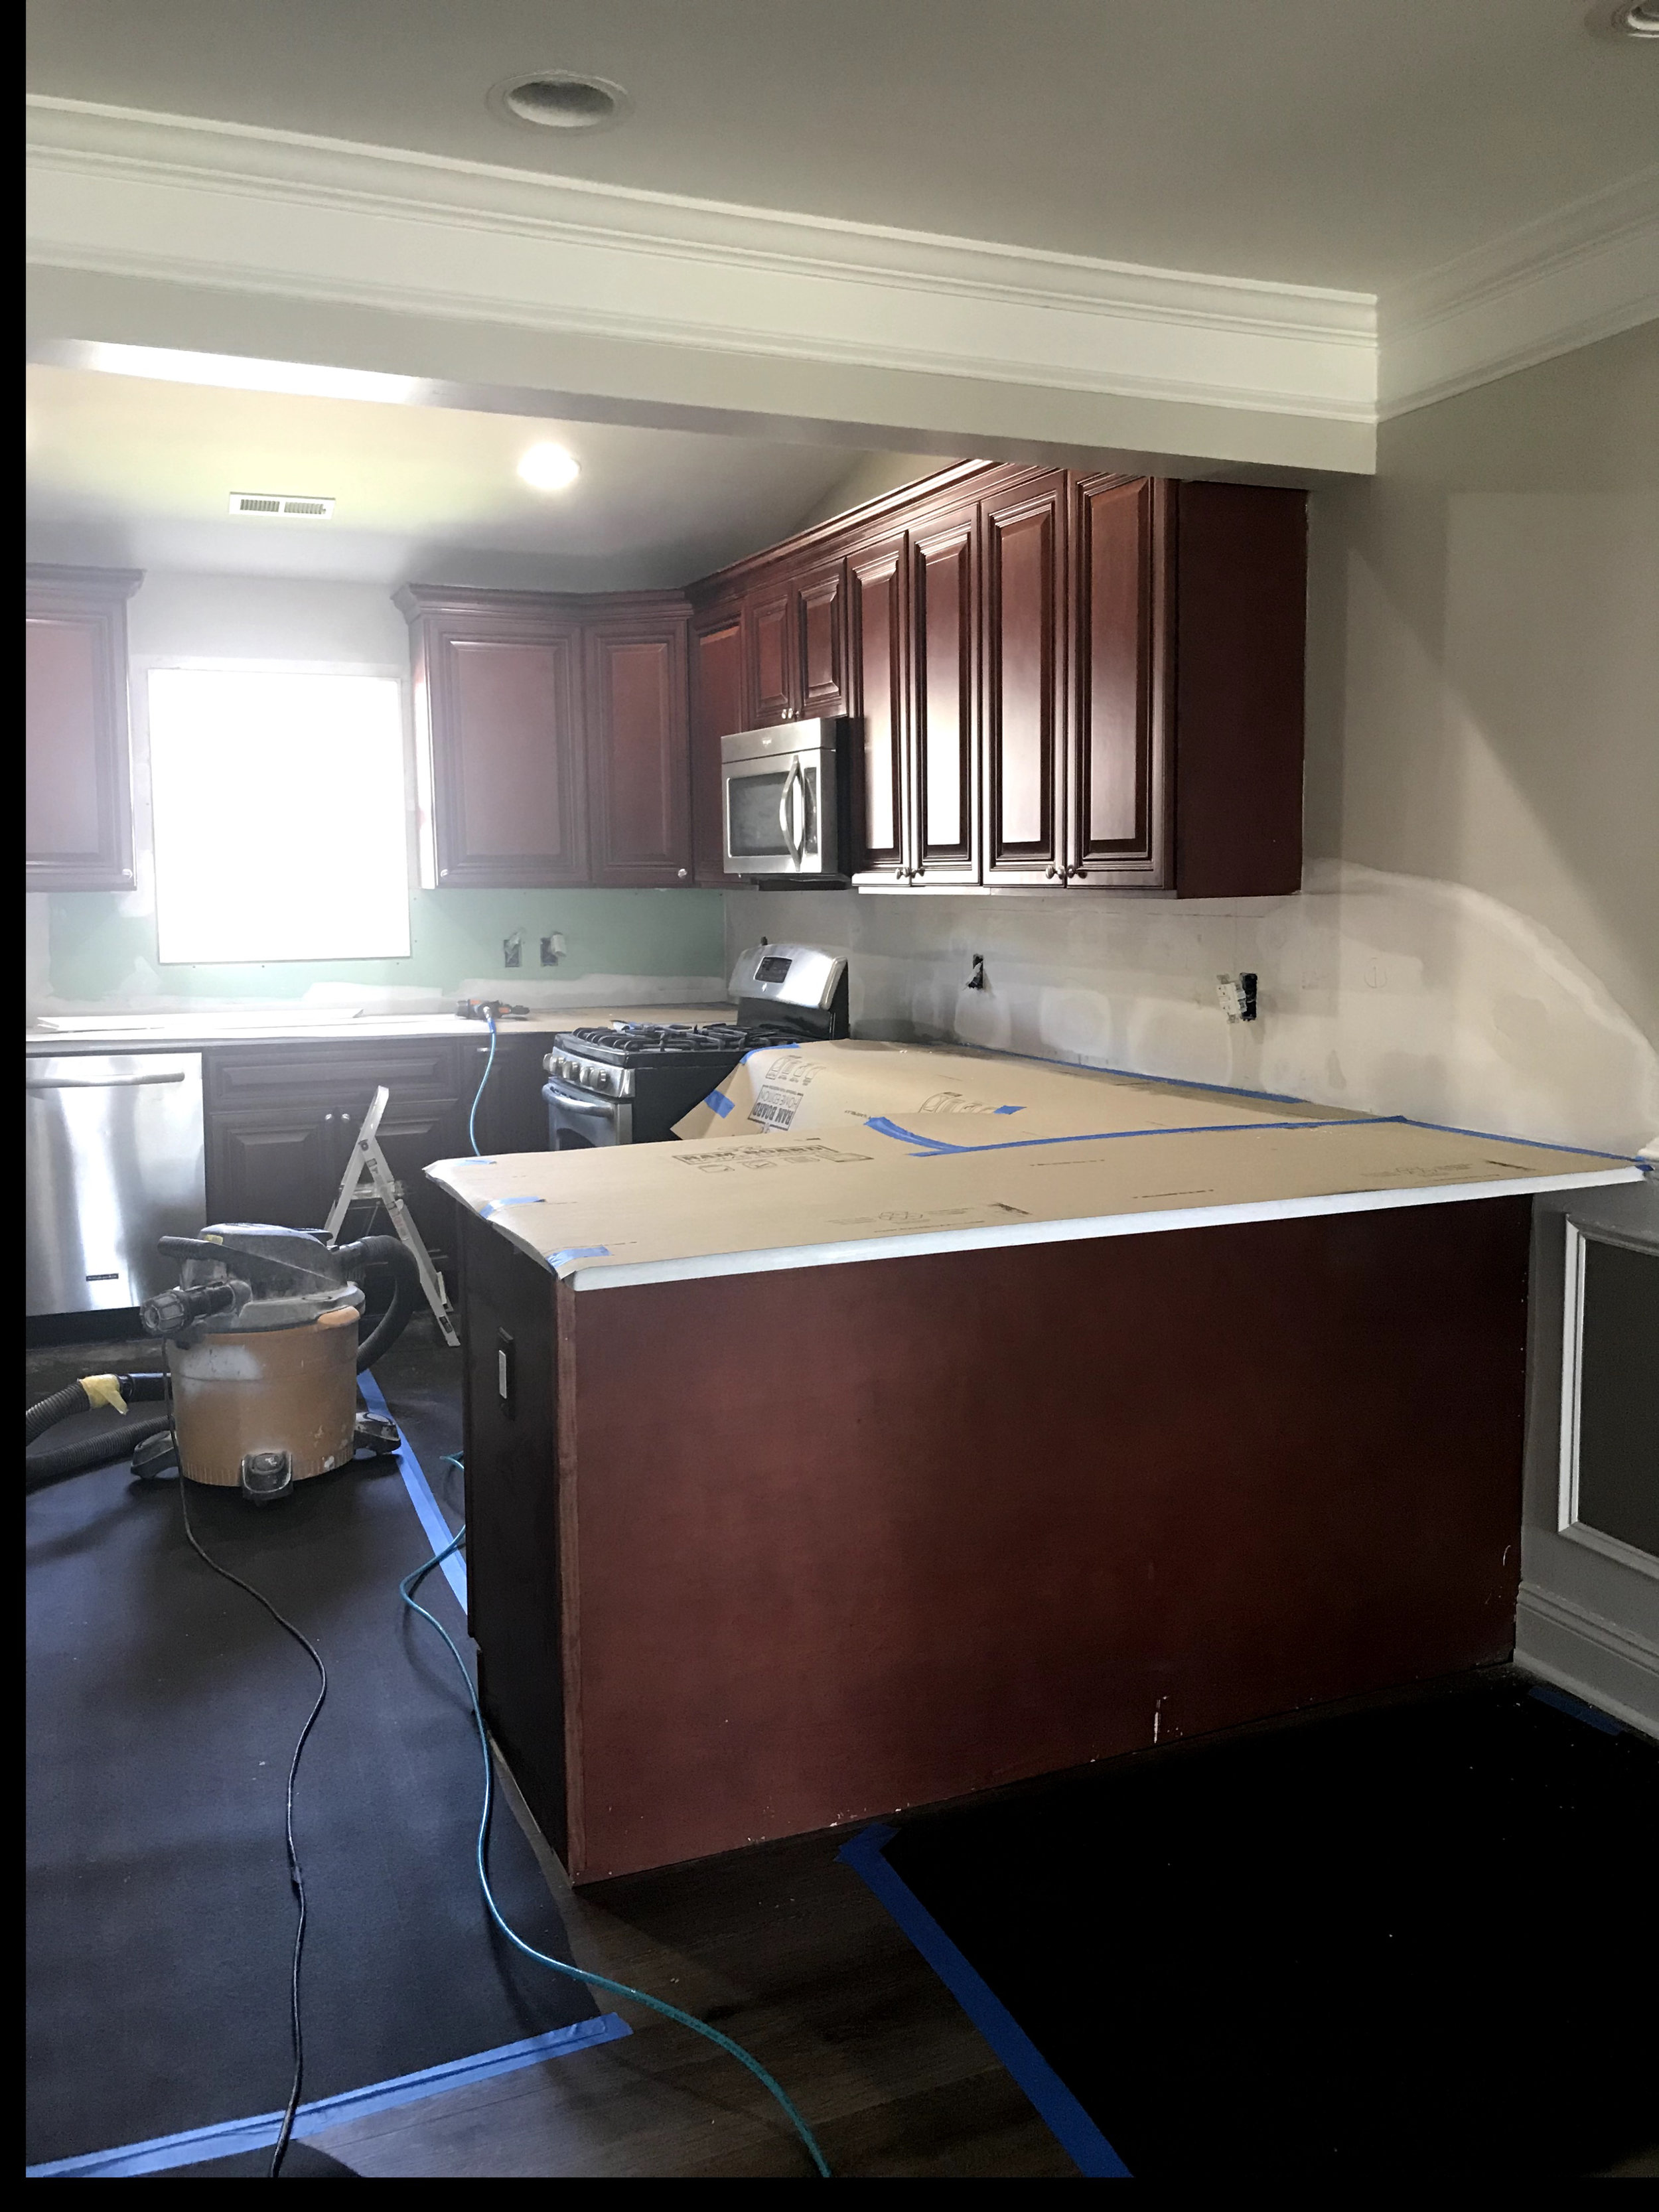 Floors and counters in